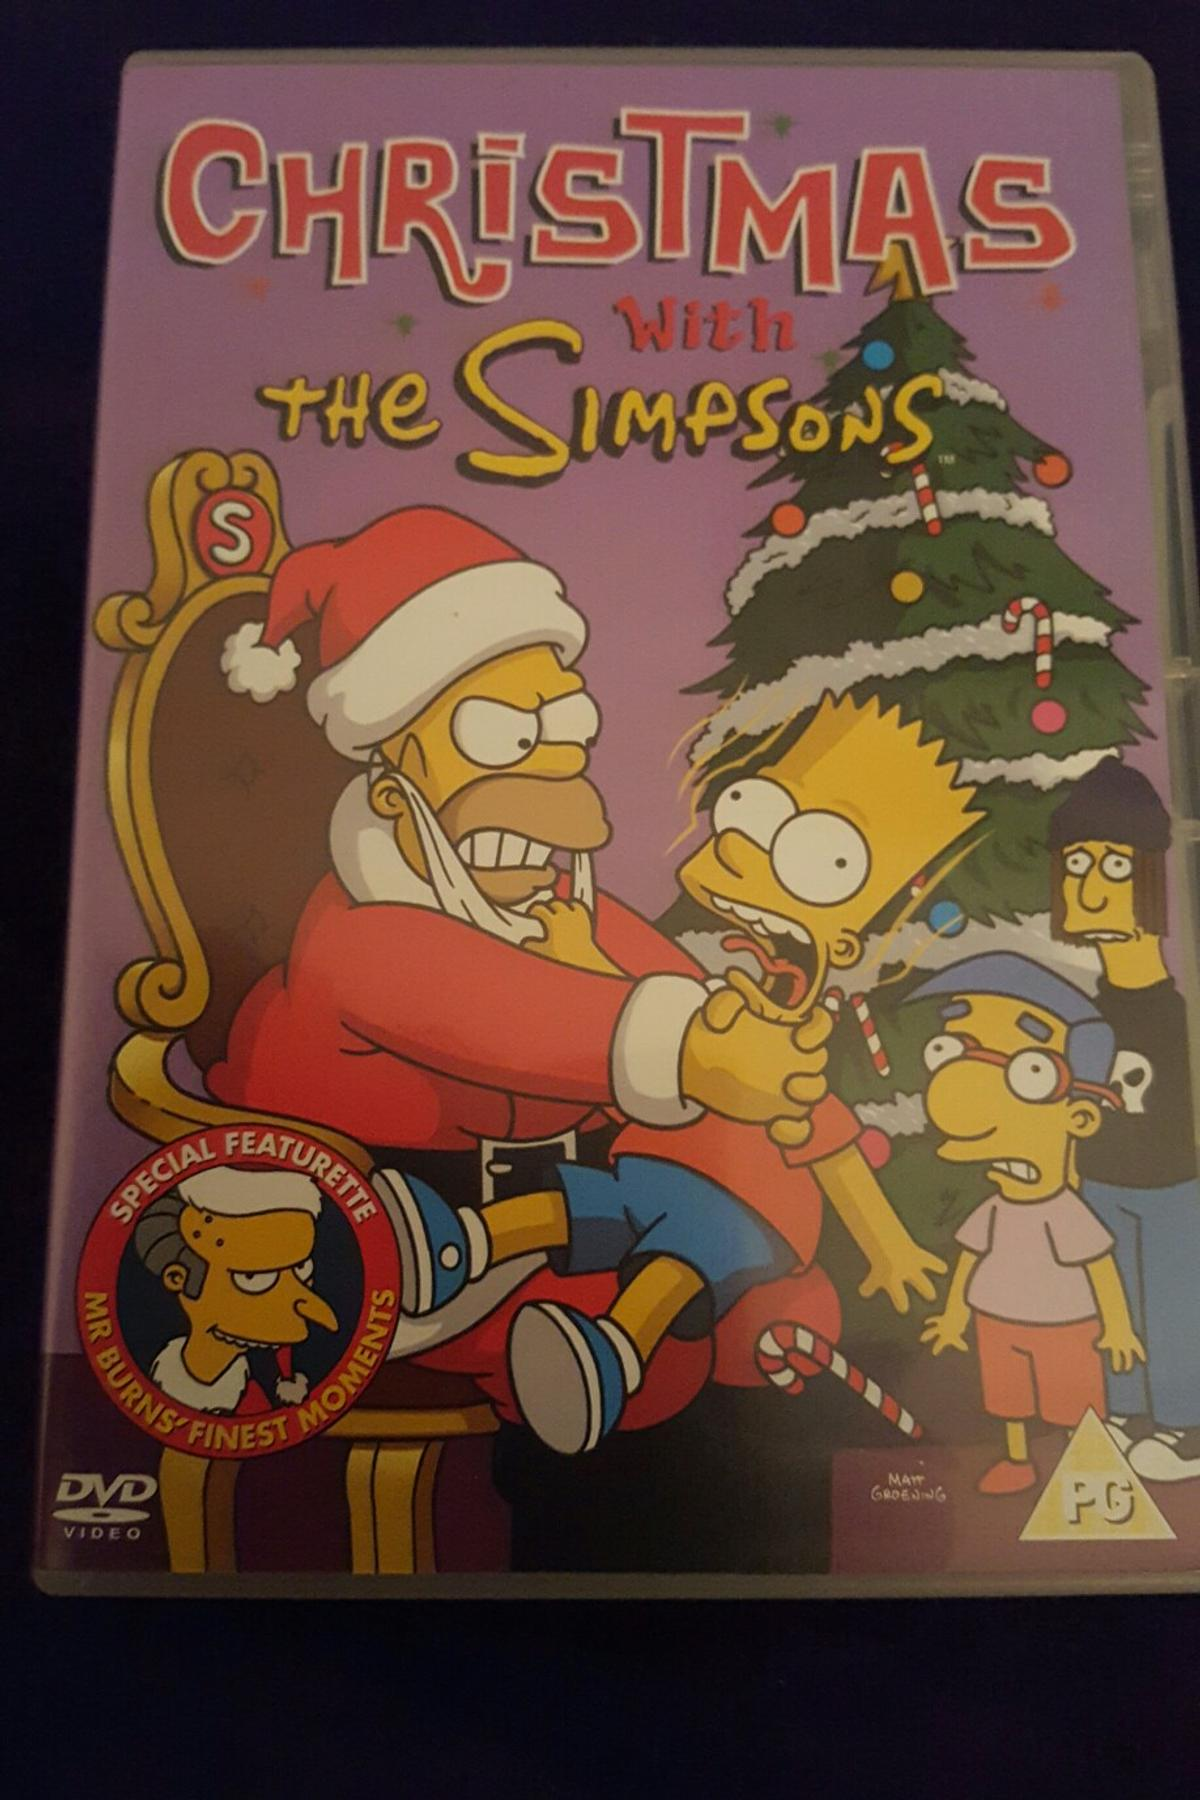 The Simpsons Christmas Dvd.Christmas With The Simpsons Dvd